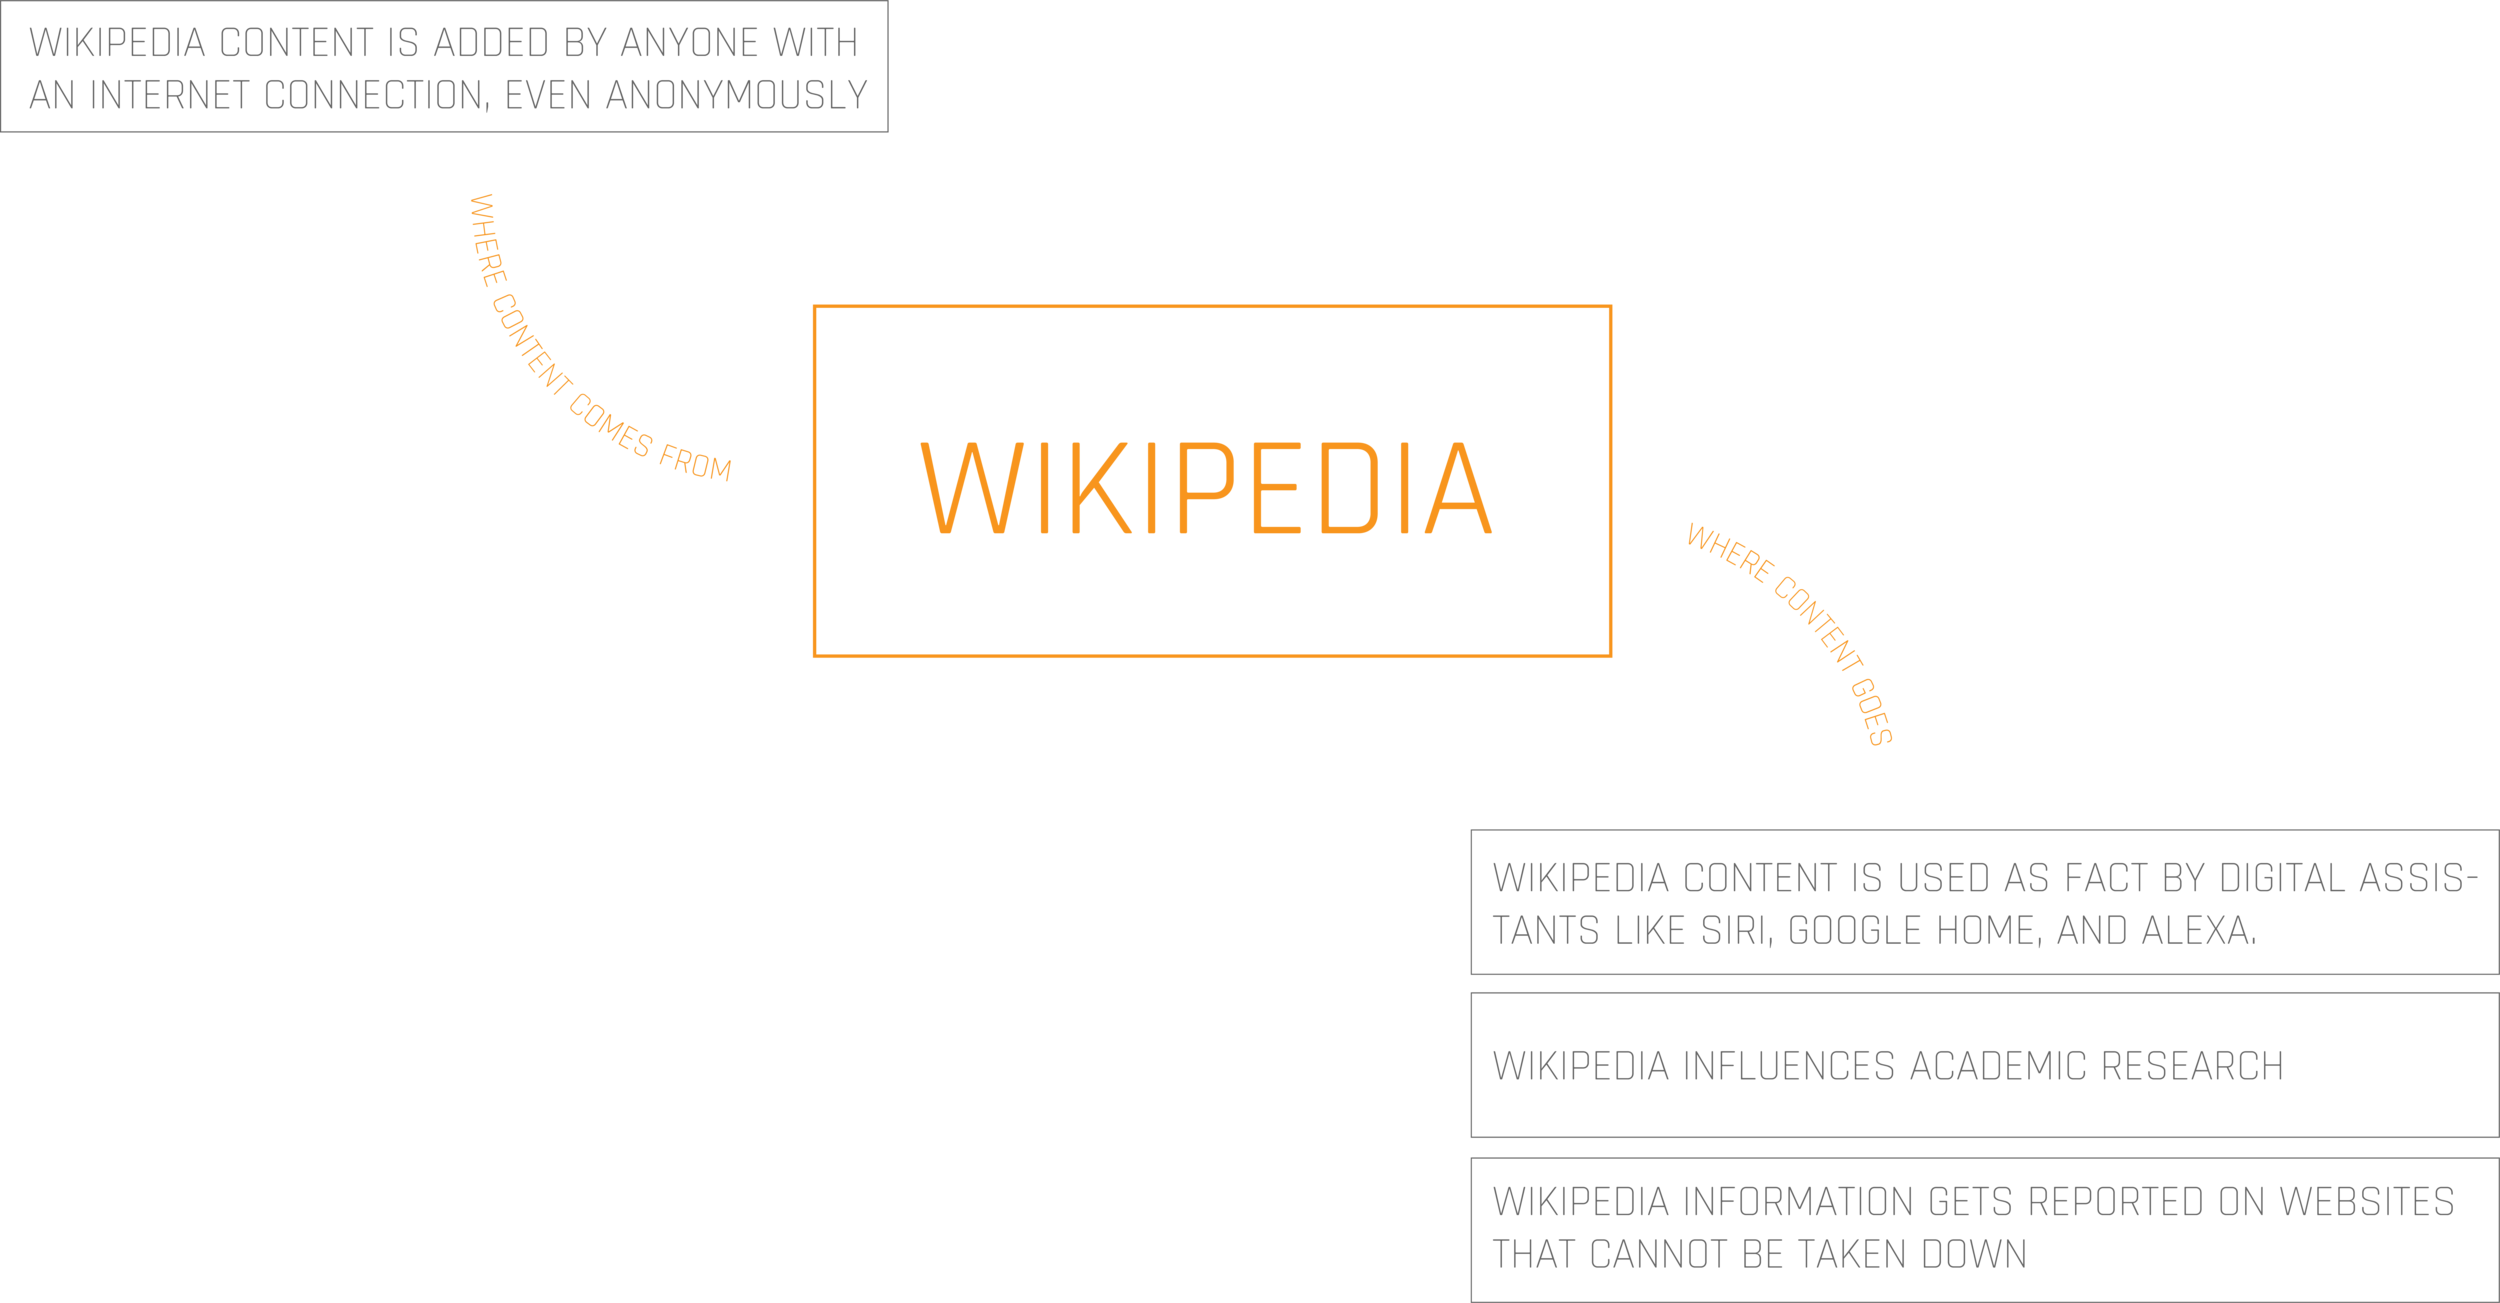 Wikipedia Content Flow Chart.png